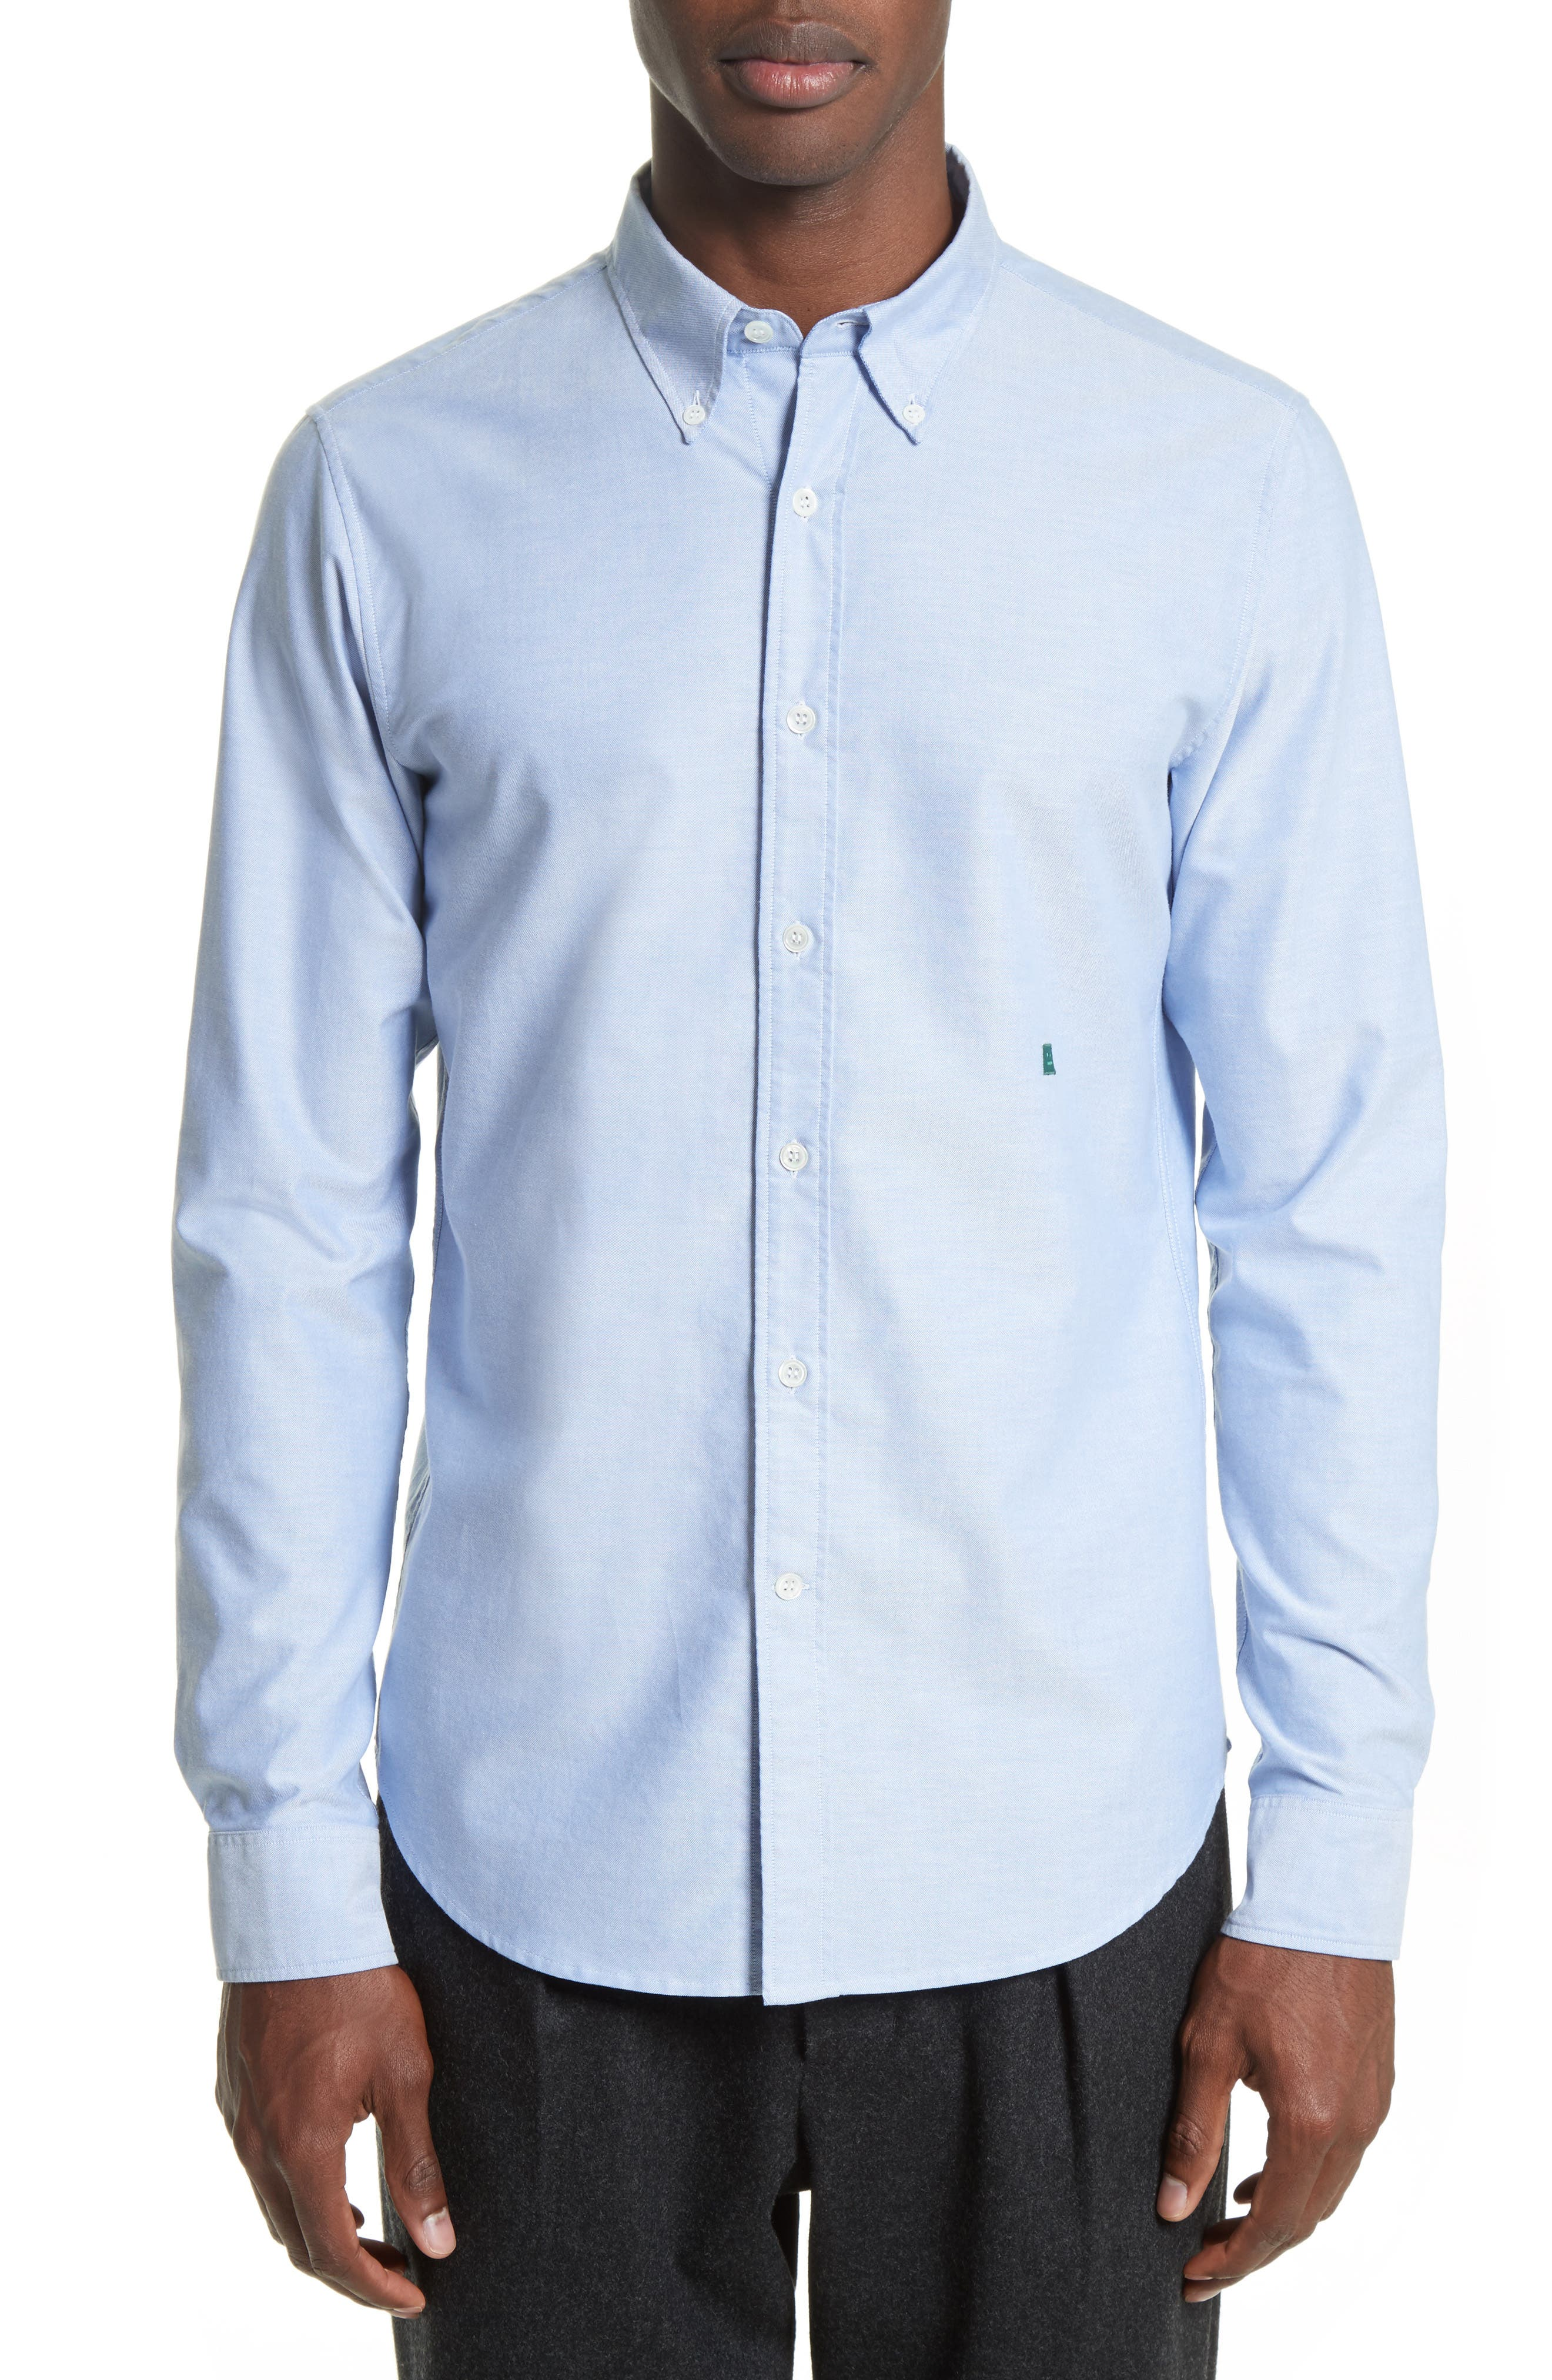 Ohio Face Patch Oxford Shirt,                             Main thumbnail 1, color,                             Blue